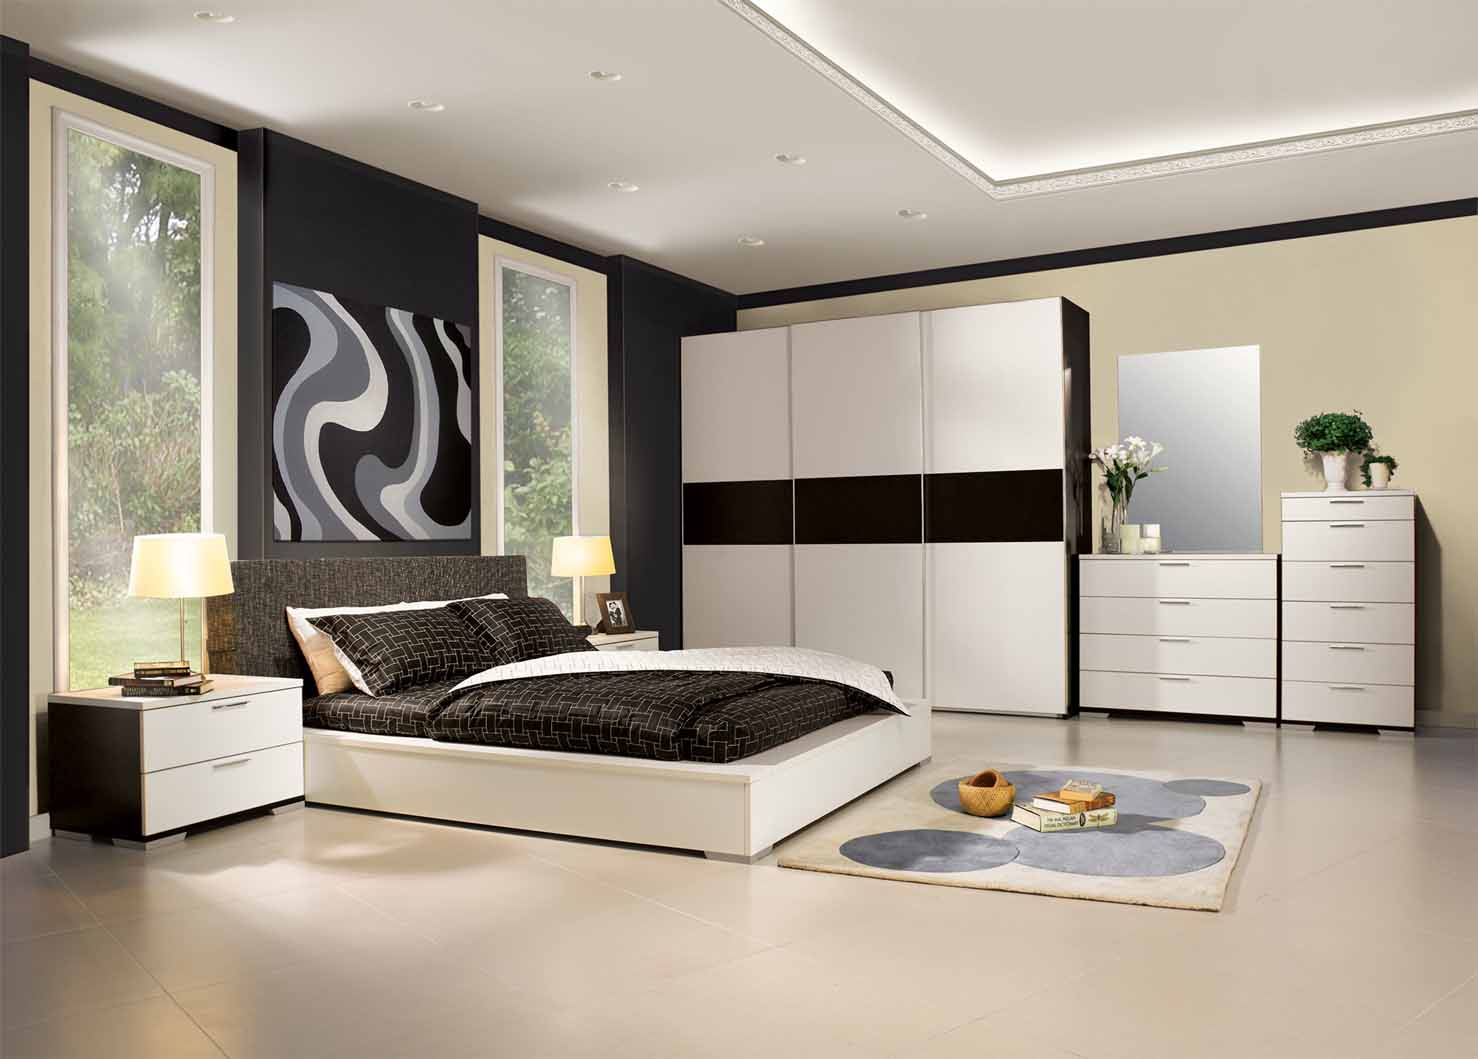 Modern black bedroom furniture popular interior house ideas for Contemporary bedroom ideas